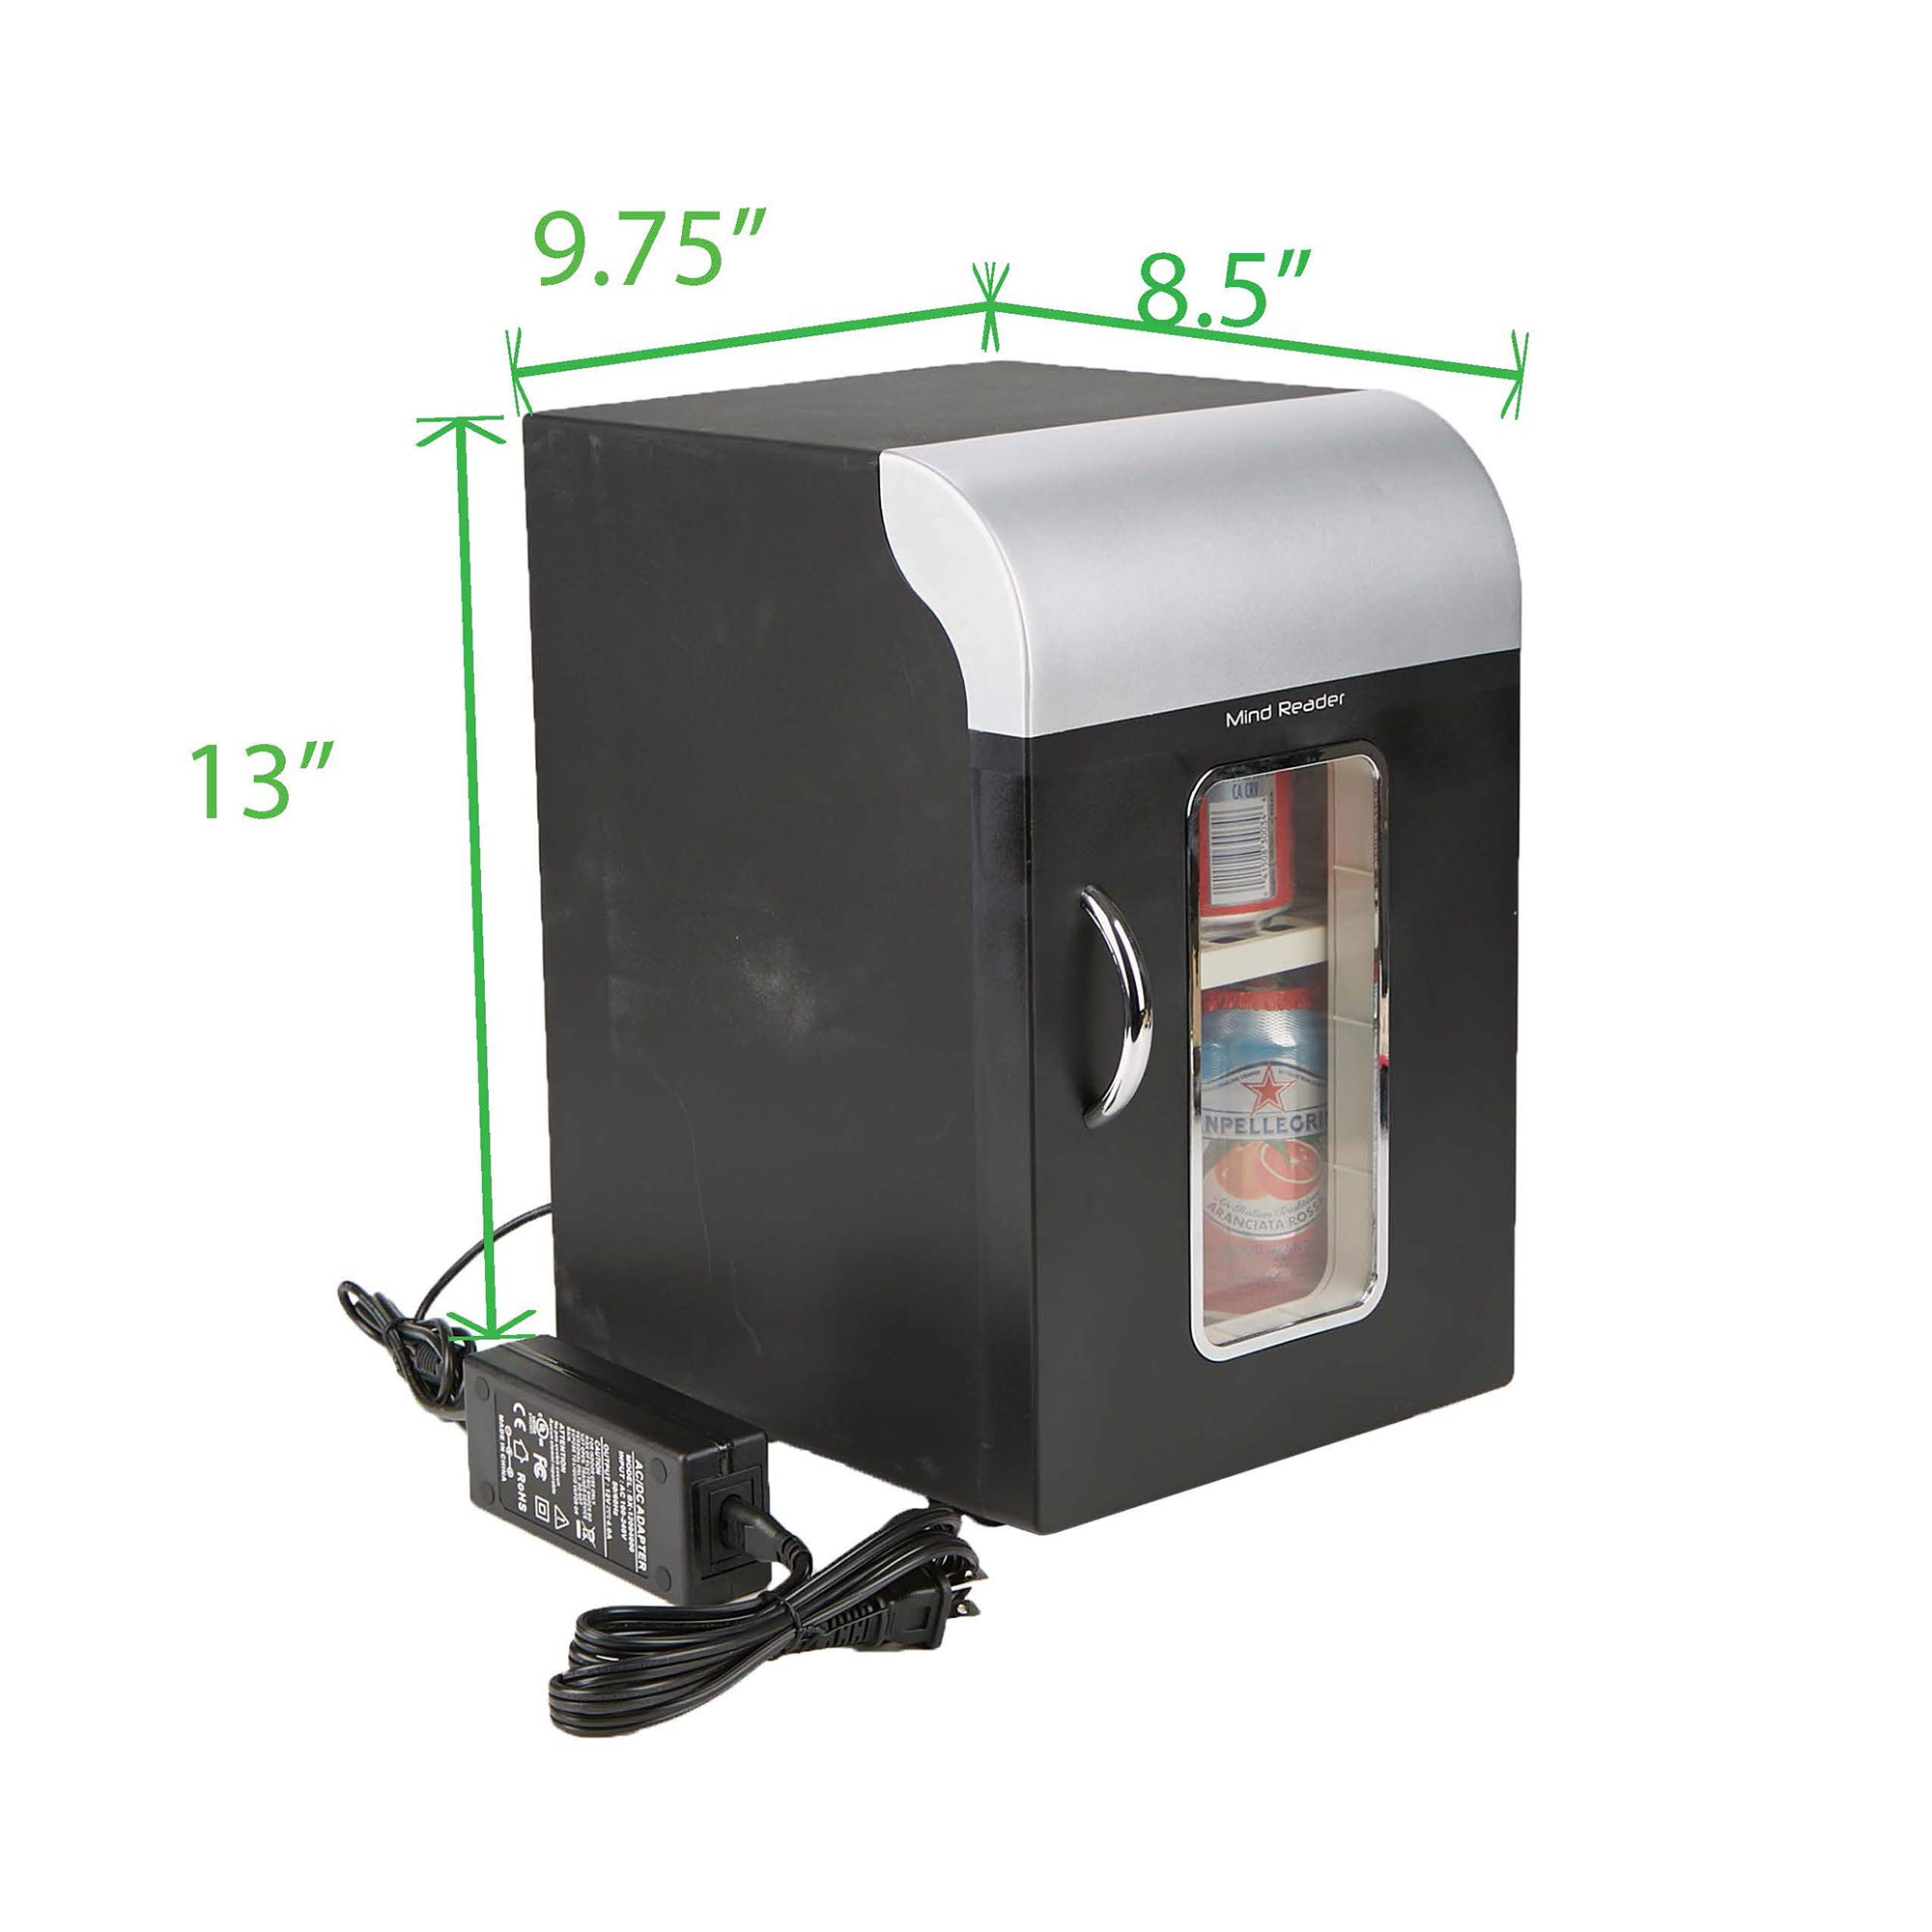 Mind Reader Compact Portable Personal Mini Fridge, For Home, Office, Six Can Capacity, Holds 2 Quarts of Milk, Black by Mind Reader (Image #5)